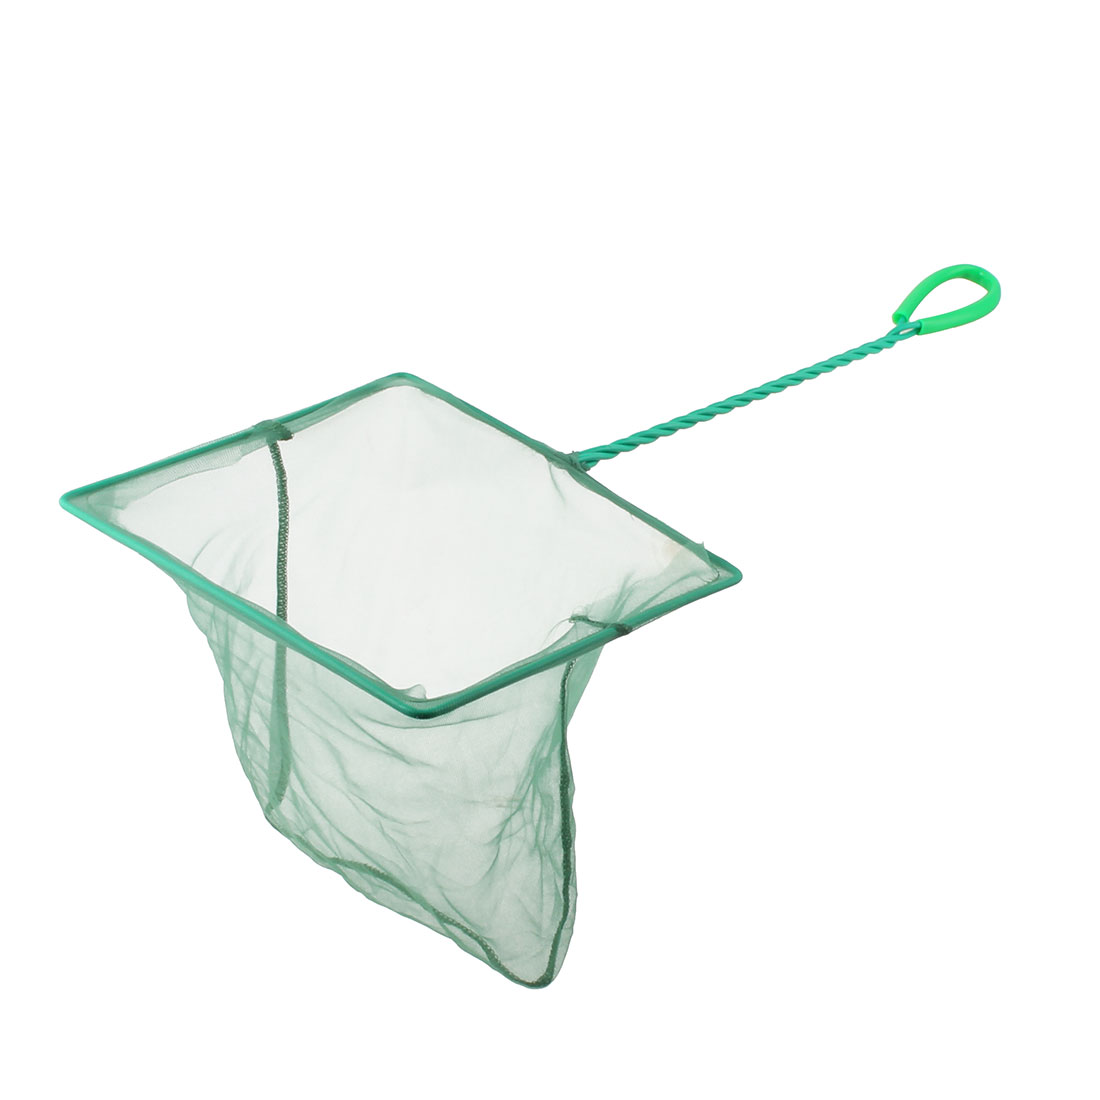 Aquarium Fish Tank Plastic Coated Handle Rectangular Shaped Mesh Fishbowl Fishing Net Green